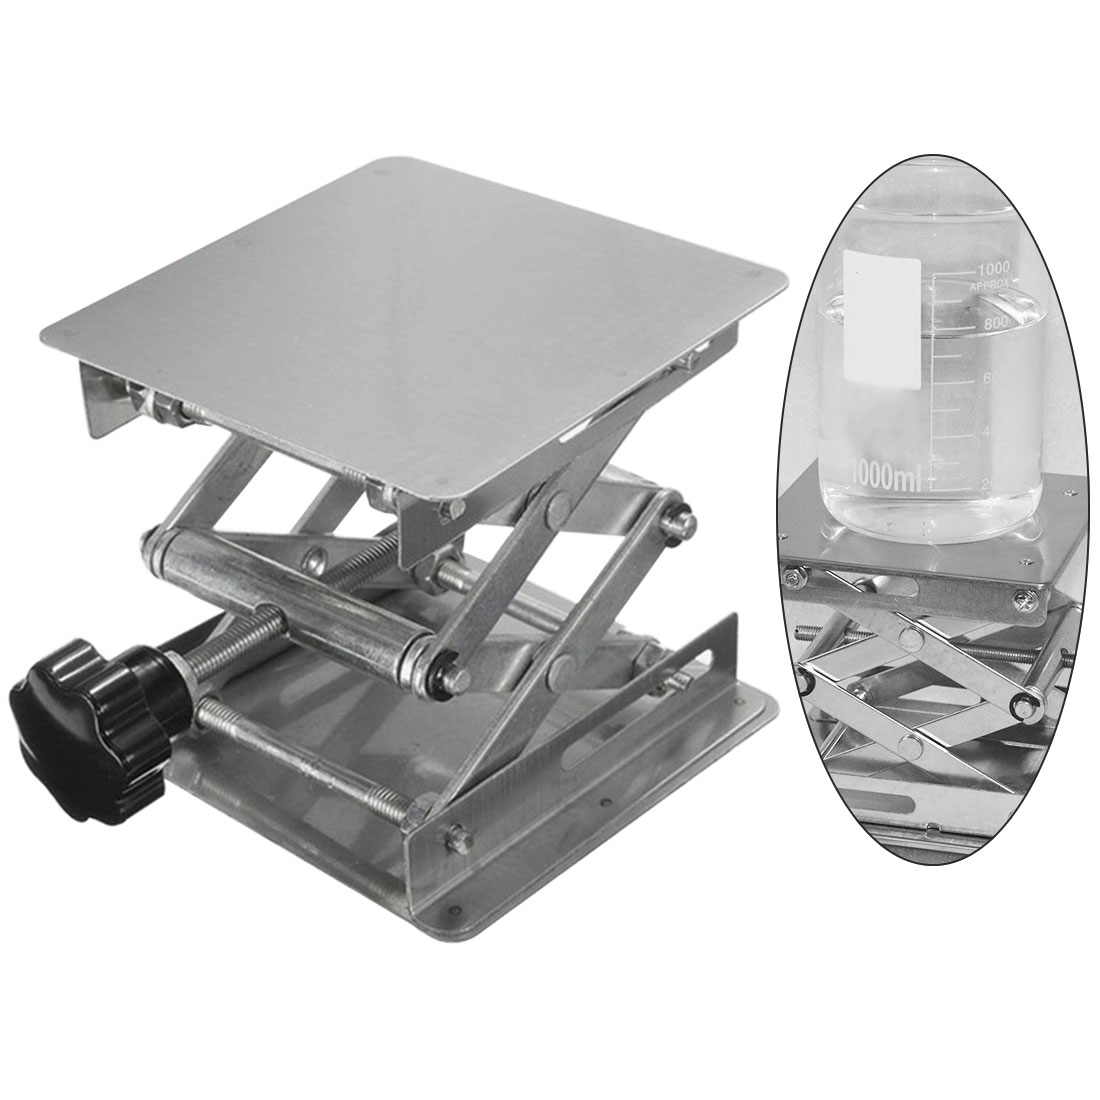 New Stainless Steel Adjustable Drill Lift Laboratory Lifting Platform Table Bench <font><b>Lifter</b></font> <font><b>Router</b></font> Shank Height Woodworking Lab image